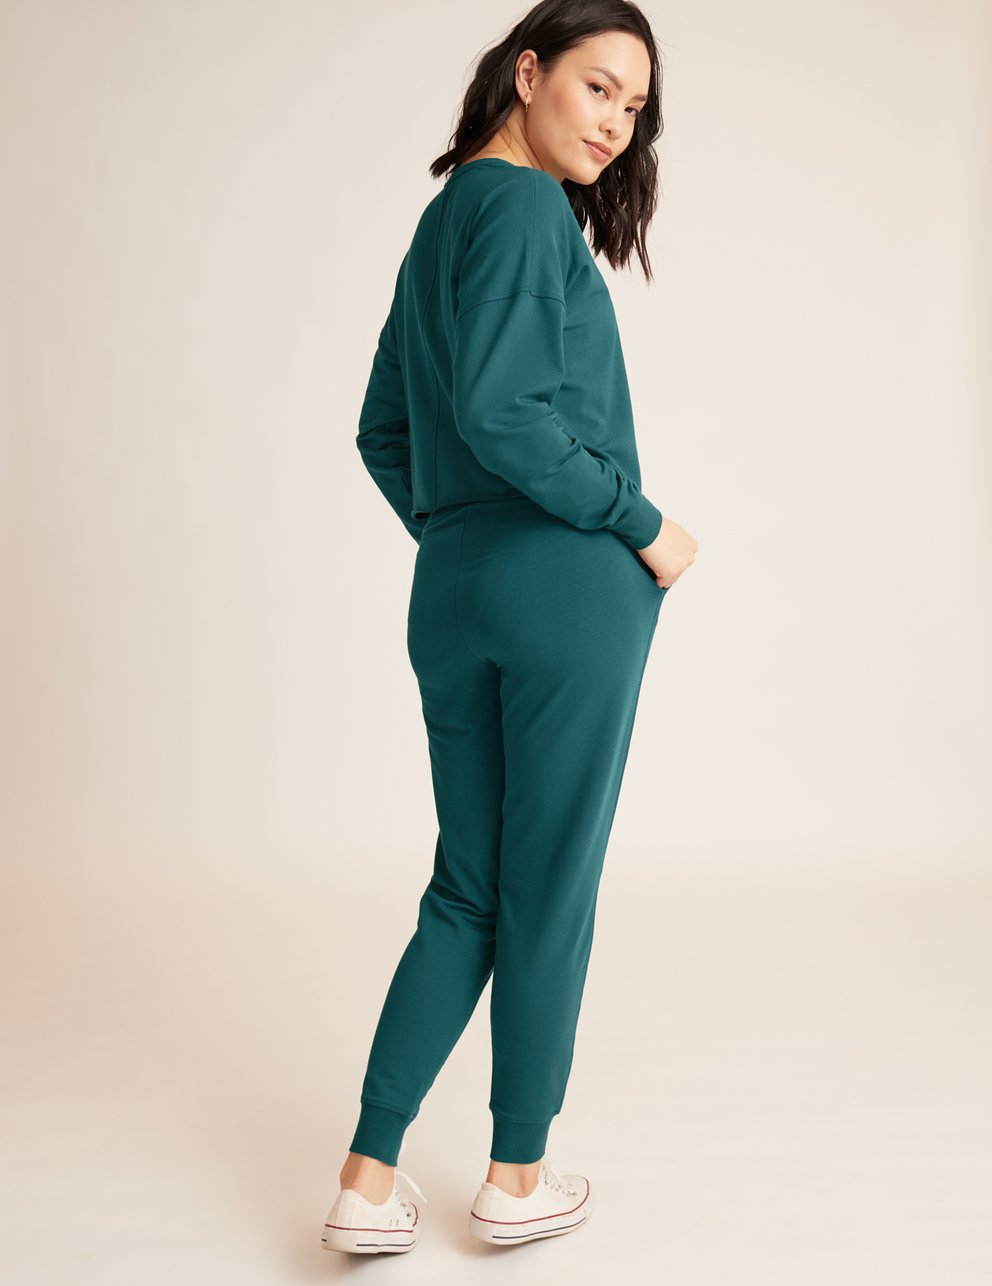 Knix loungewear set review